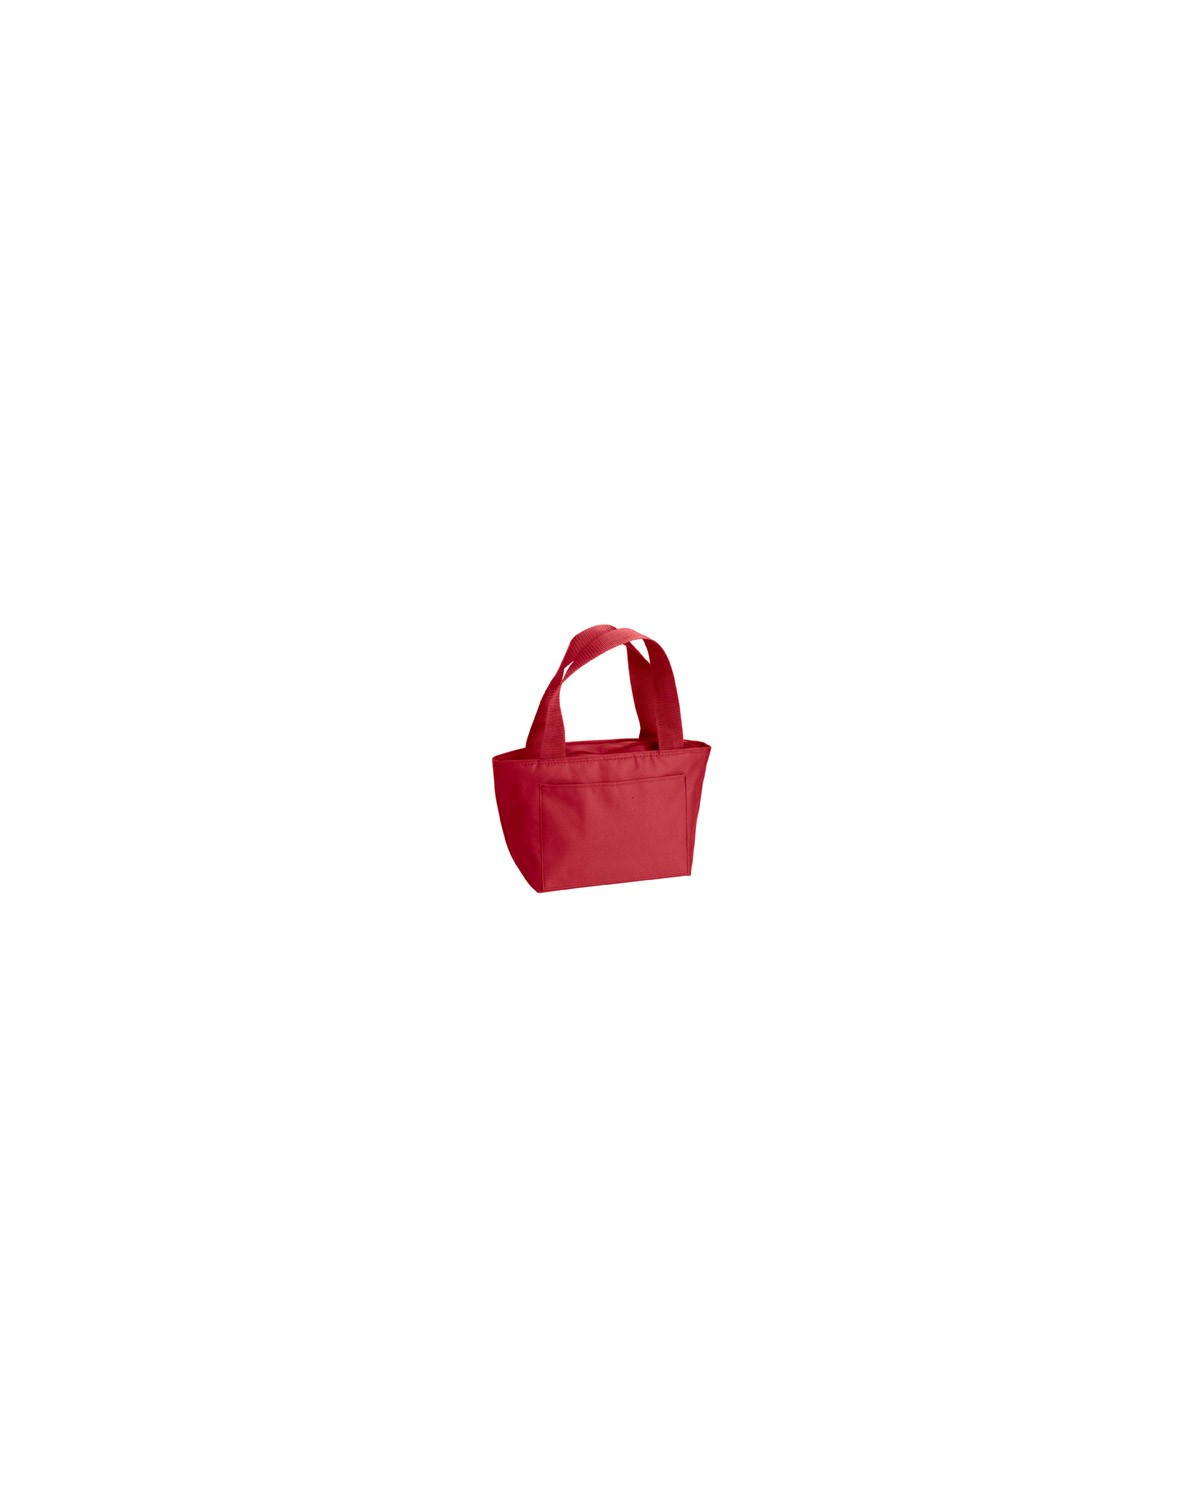 8808 Liberty Bags RED